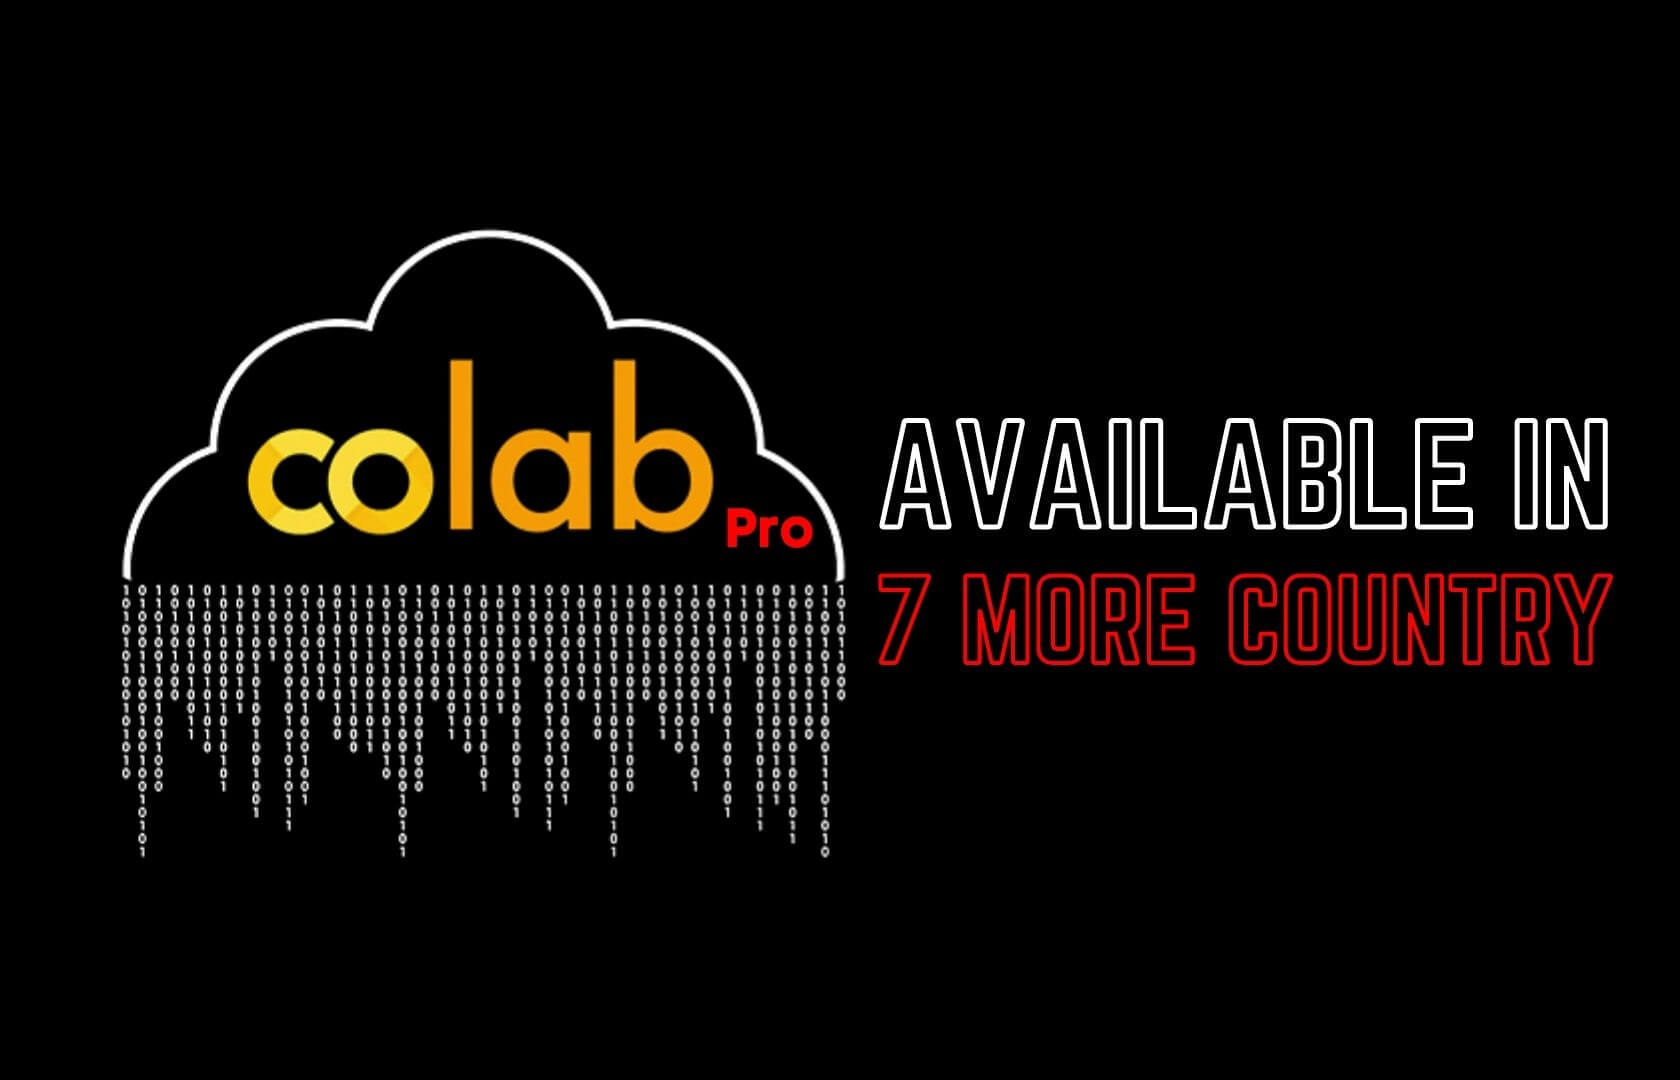 Google colab, google colab pro now available in 7 more countries